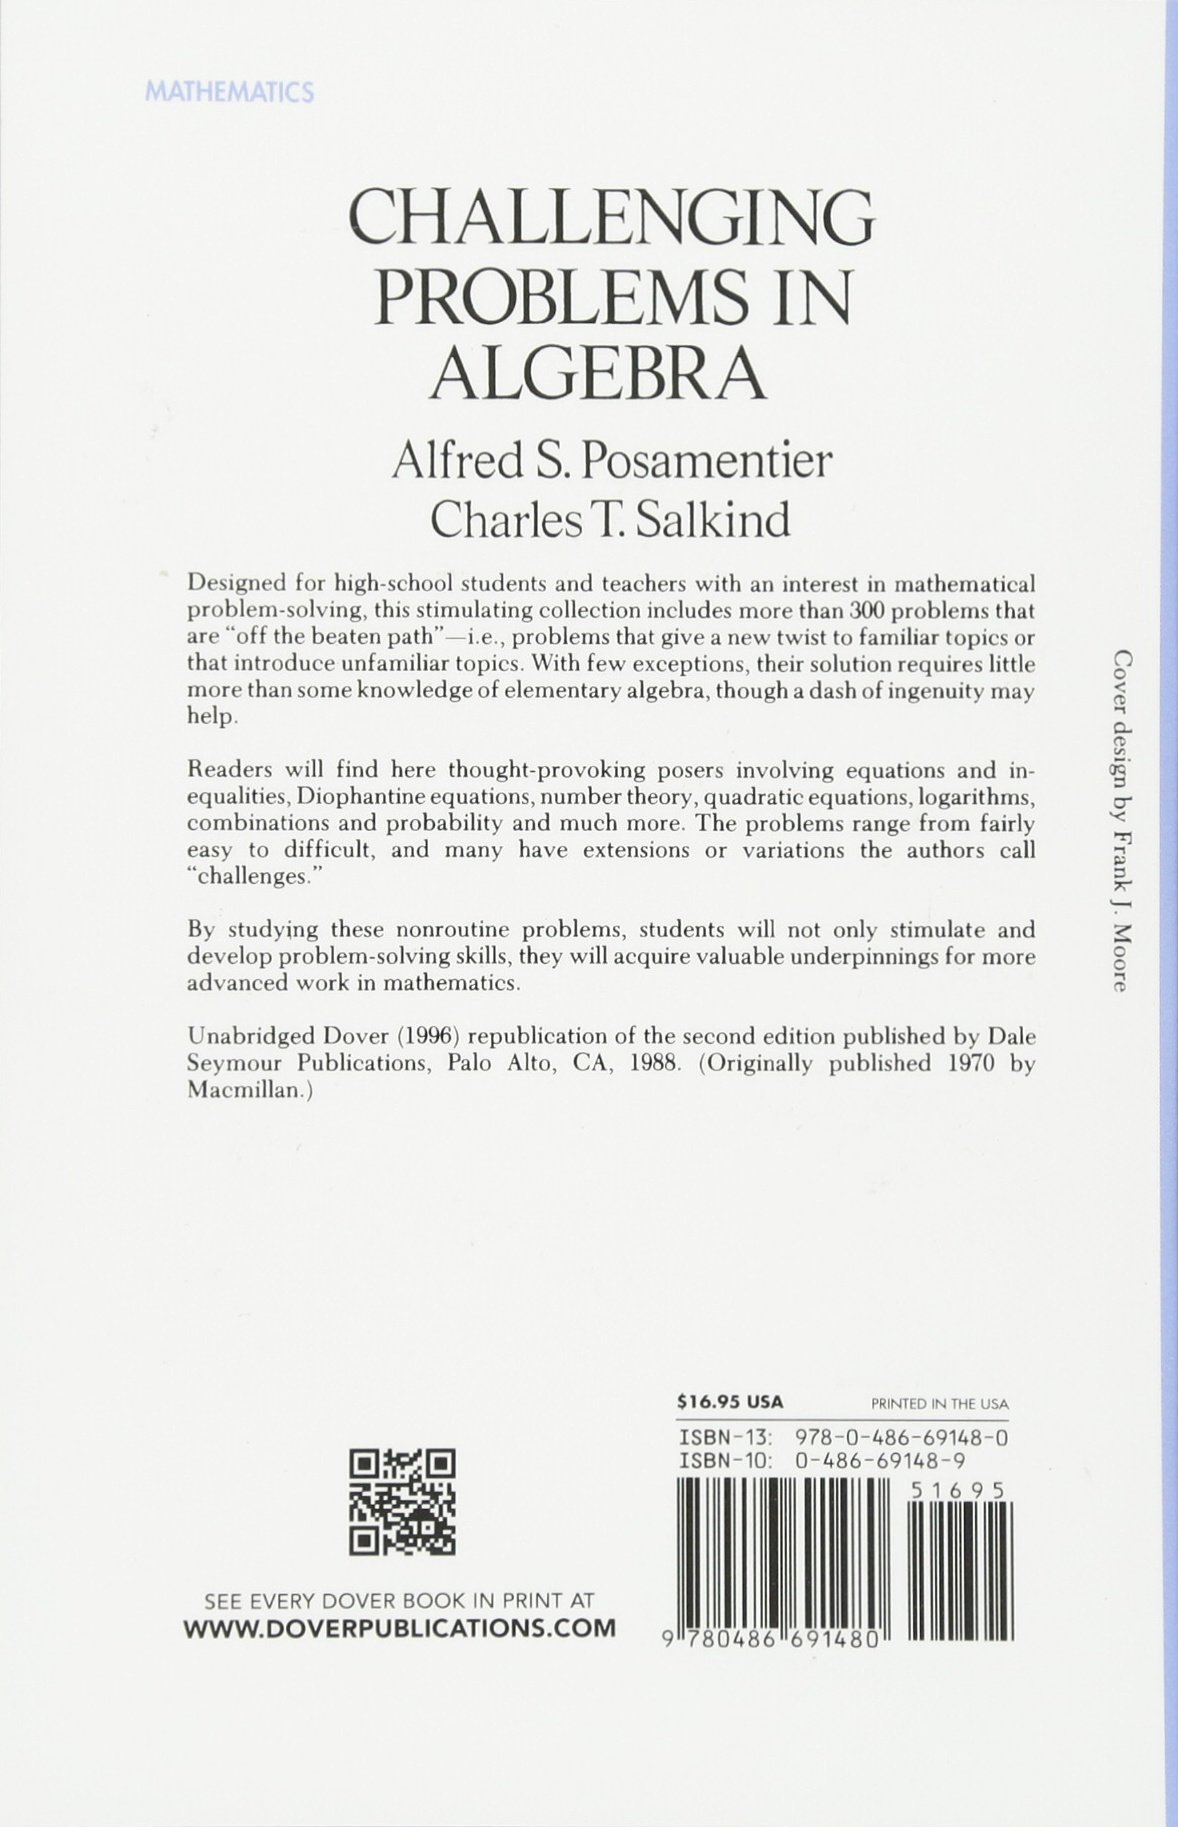 Challenging Problems in Algebra (Dover Books on Mathematics): Amazon ...